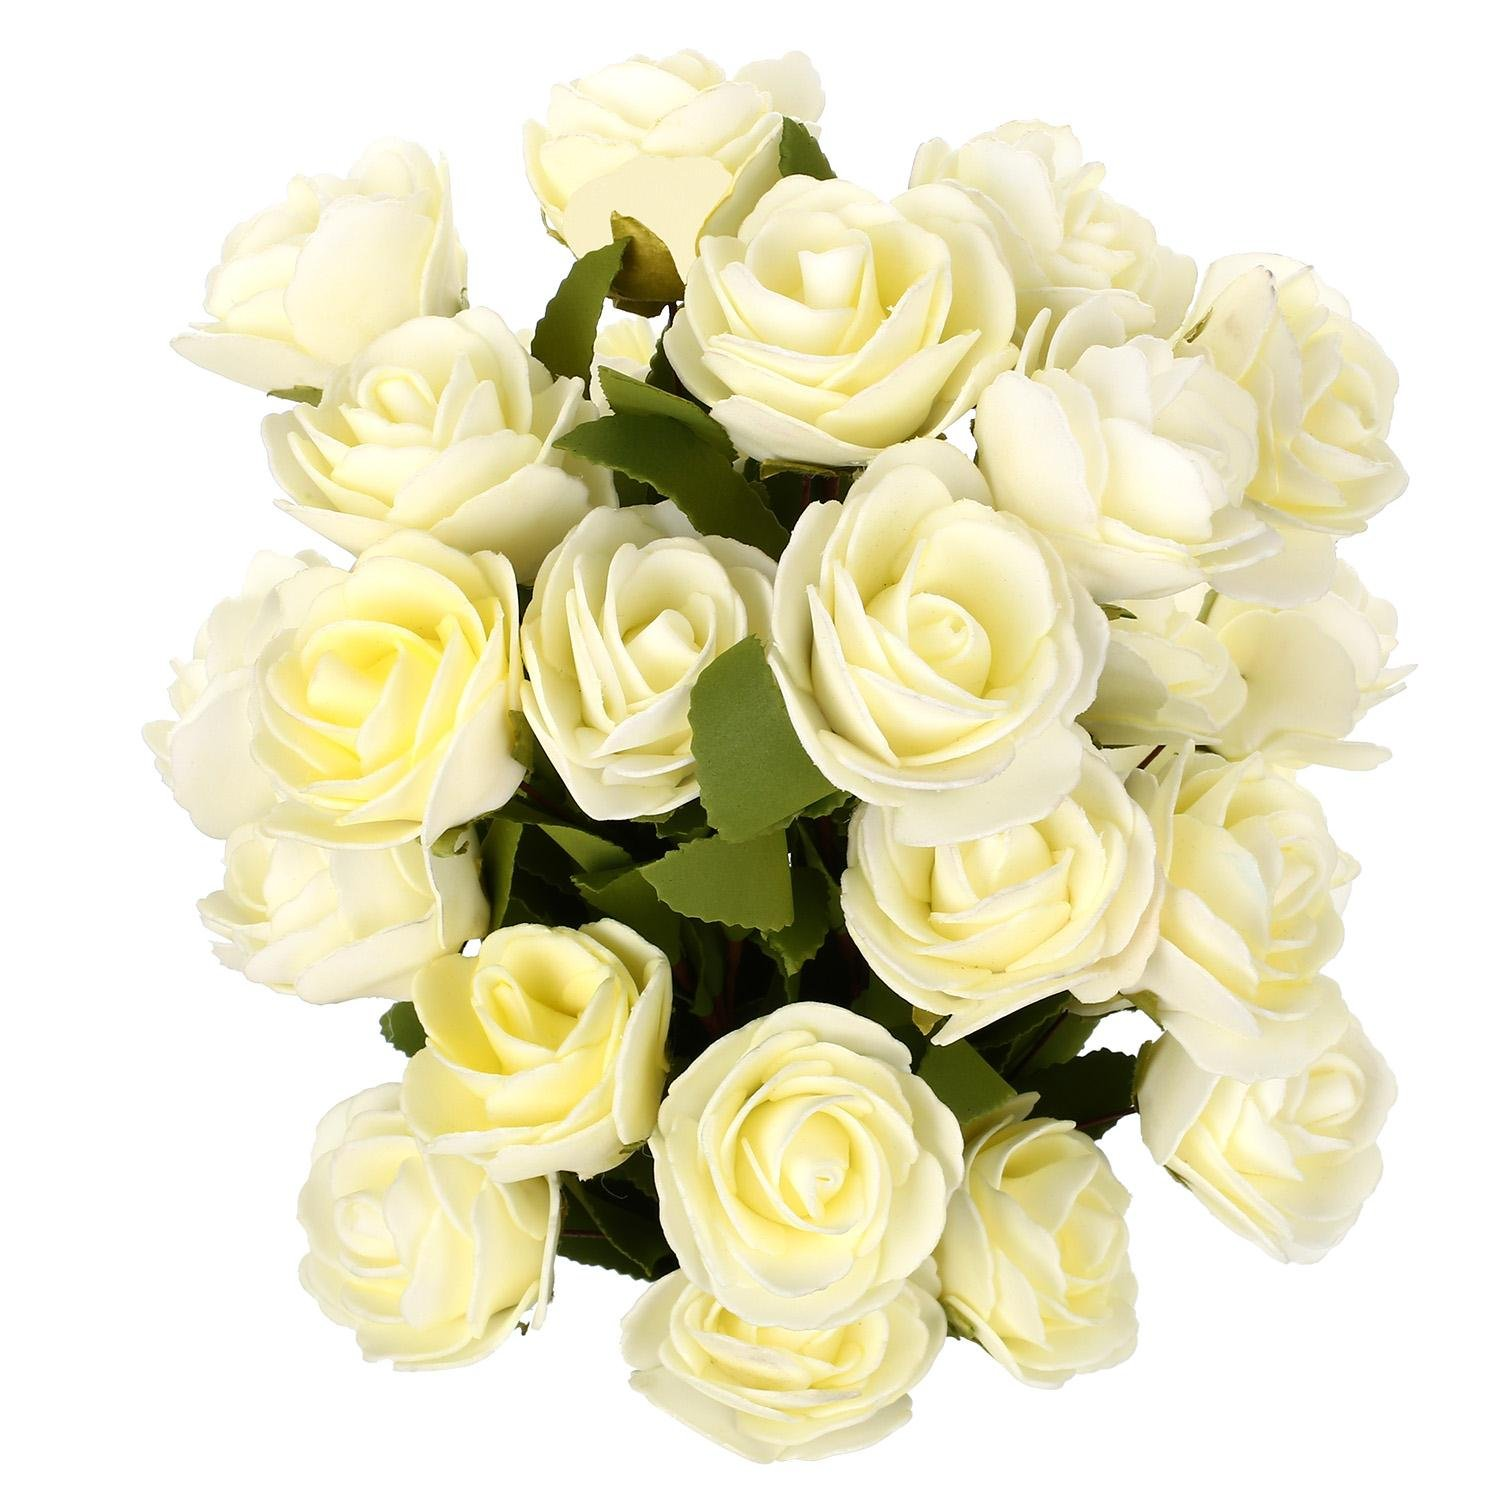 Cheap White Fake Roses Find White Fake Roses Deals On Line At